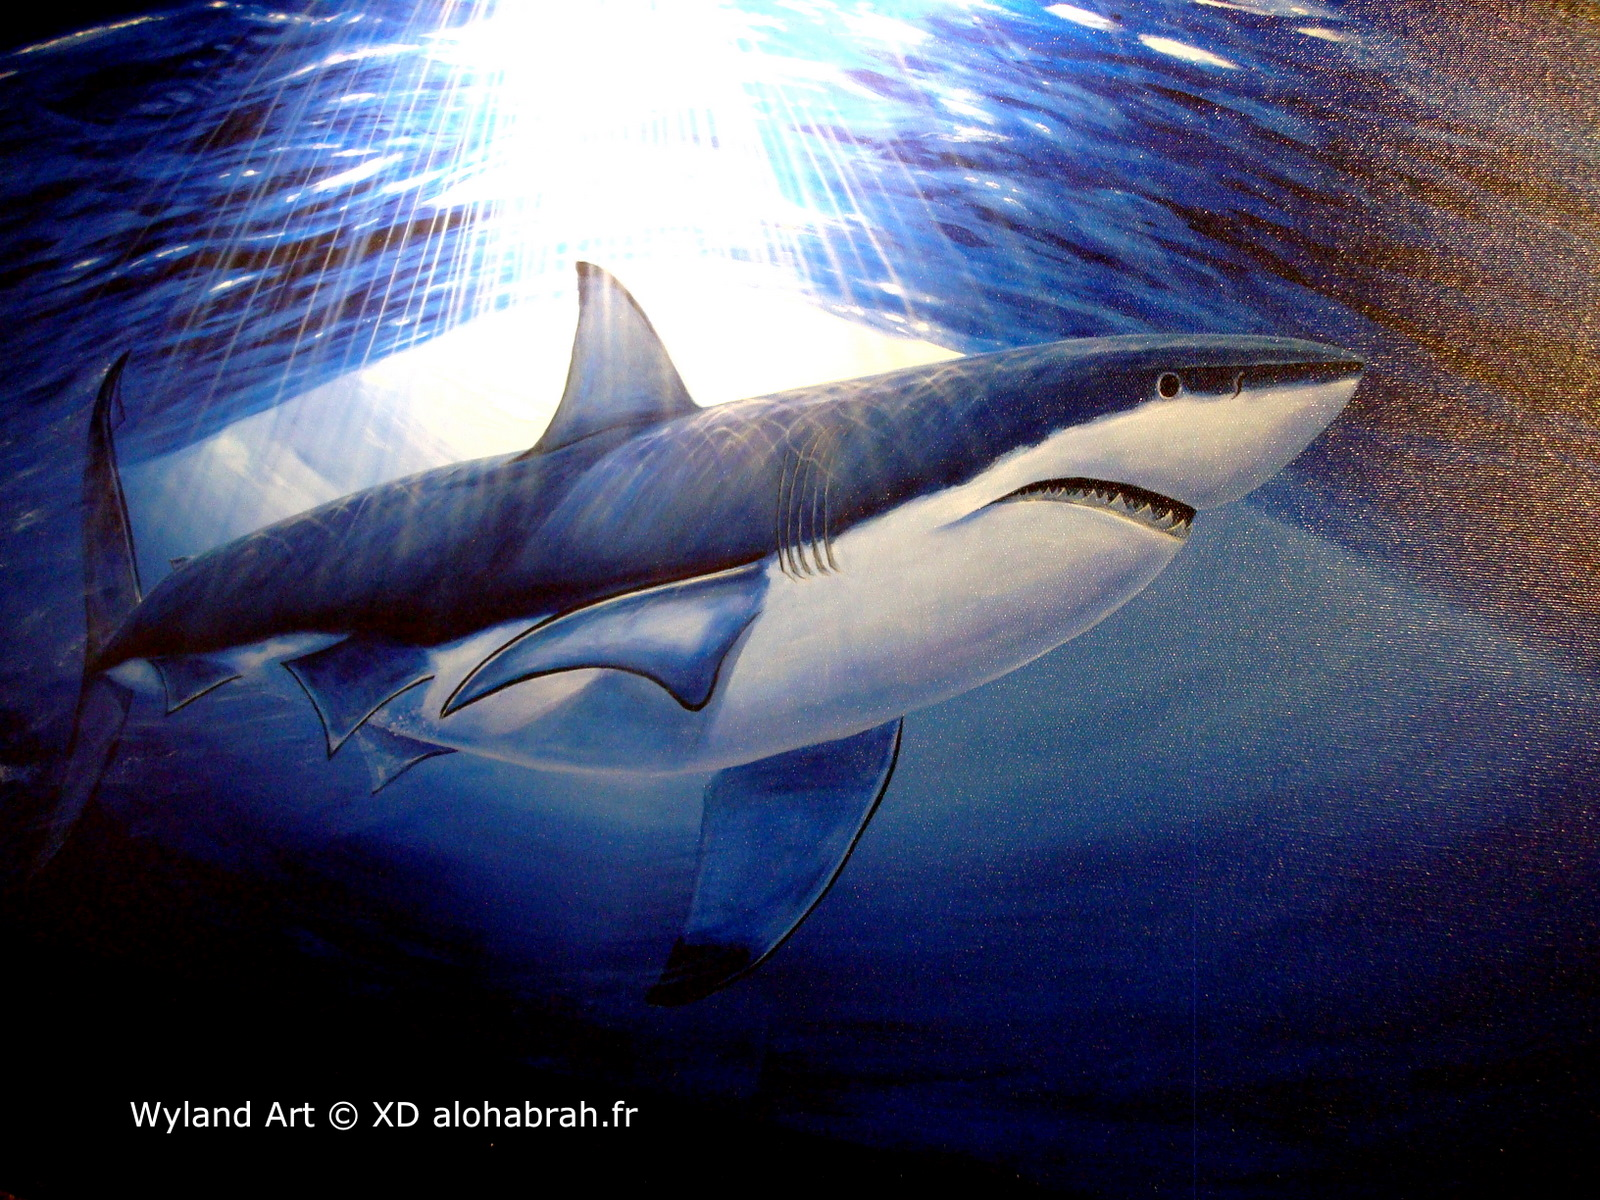 Big Shark - Wyland Art © XD alohabrah.fr